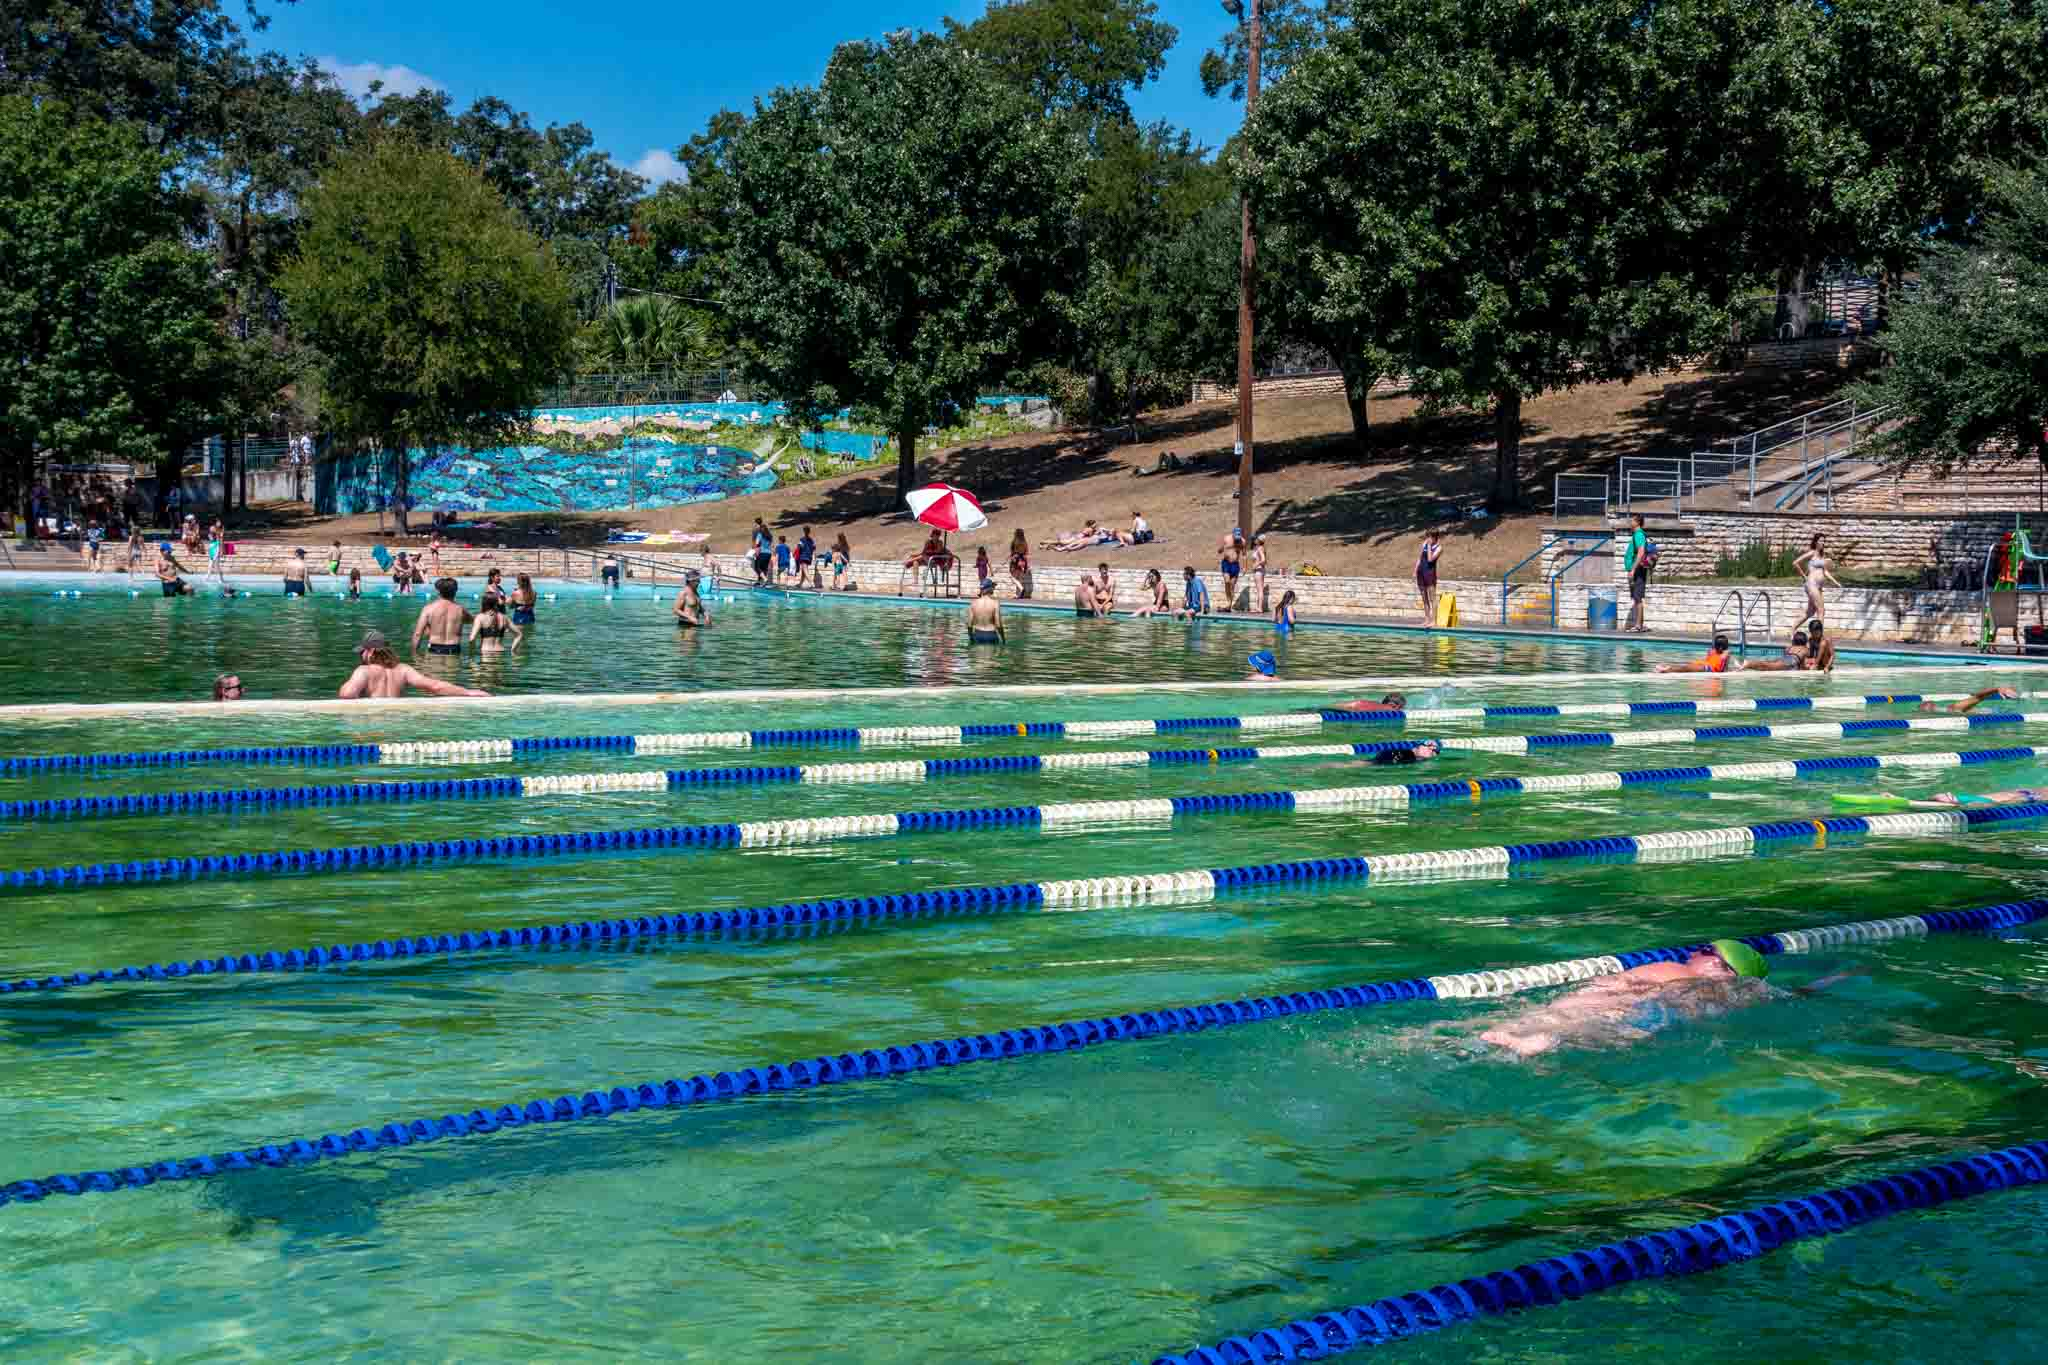 People at a large swimming pool, Deep Eddy Pool in Austin